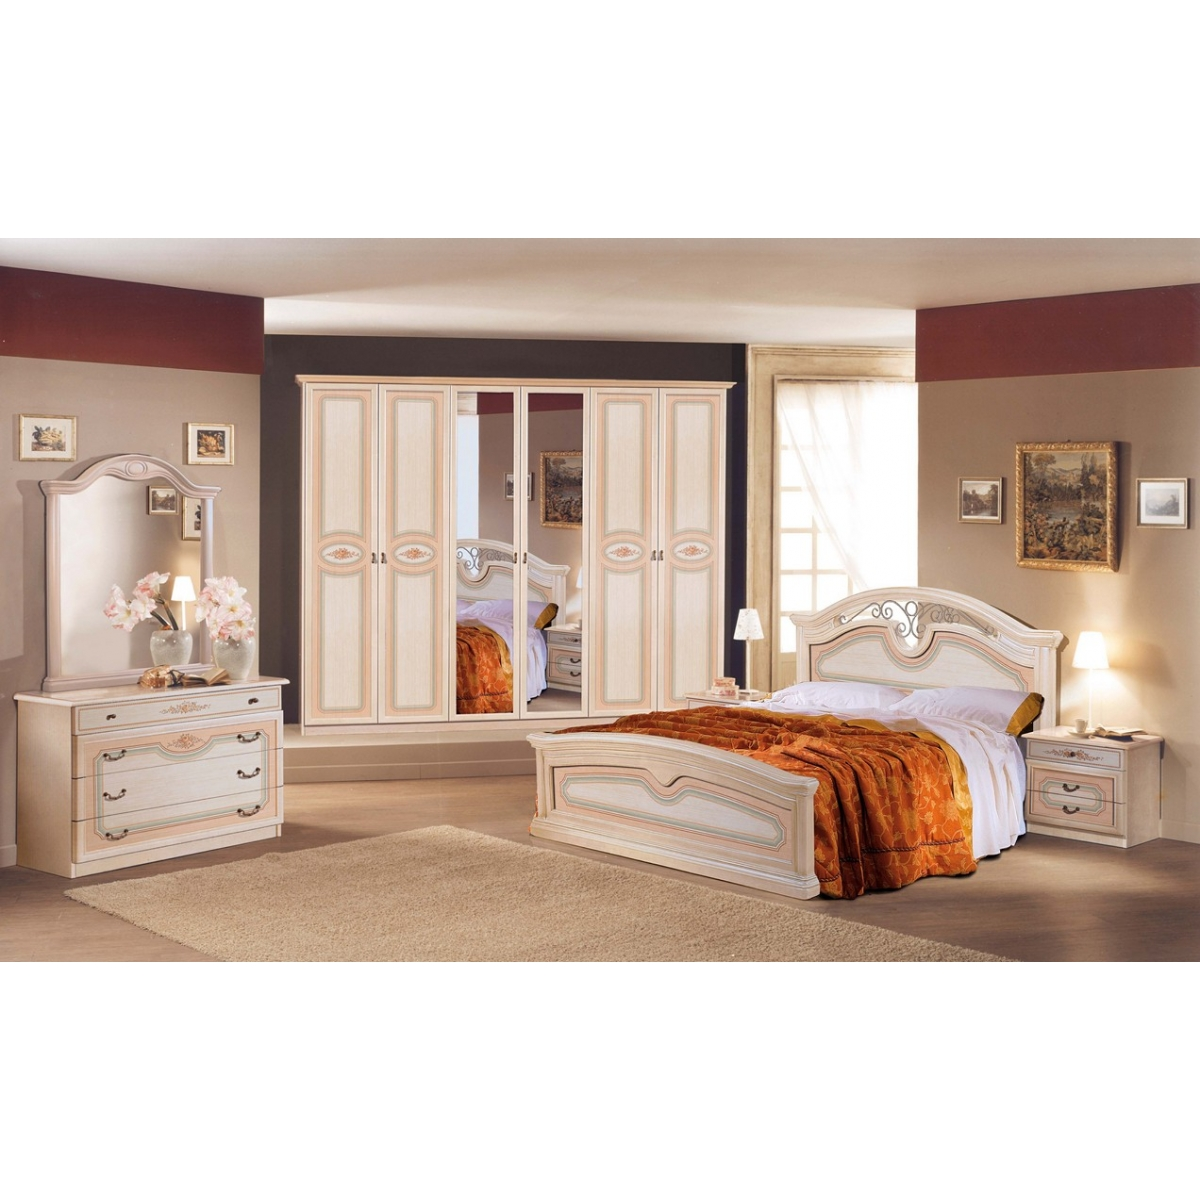 867 CAMERA DA LETTO PATINATA BEIGE